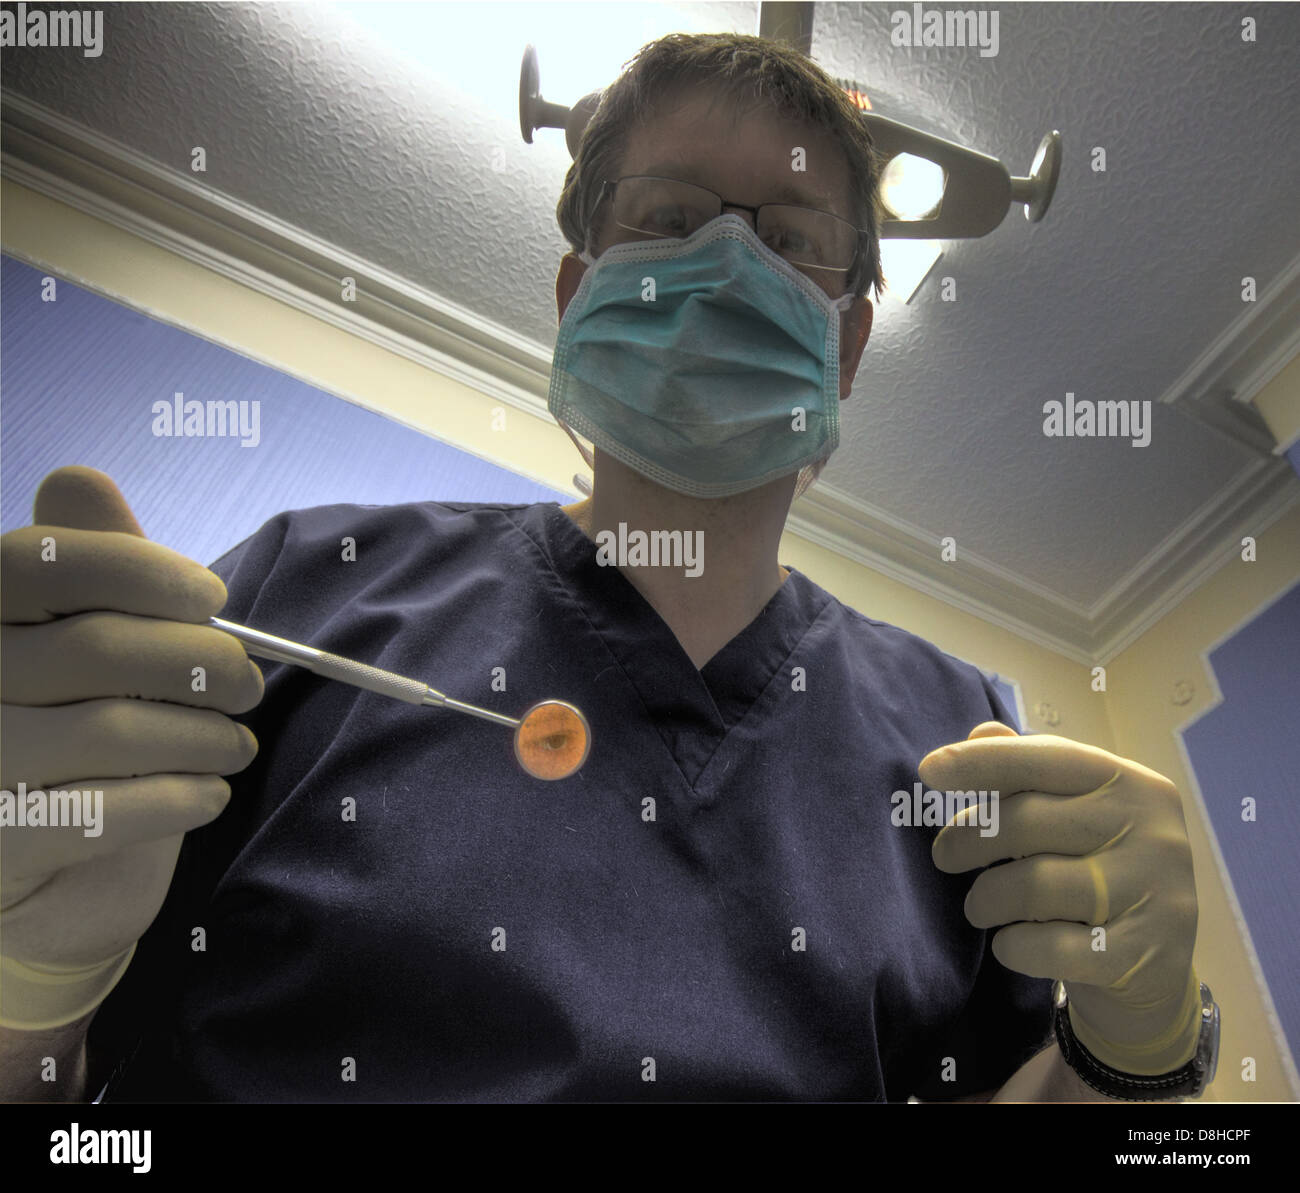 surgeon,mask,light,lighting,gloves,rubber,fear,psychological,afraid,in,the,chair,England,English,Warrington,GB,British,great,britain,dental,operate,operating,portrait,man,male,cover,insurance,insure,cosmetic,general,training,school,dentures,exam,restorations,crowns,bridges,in,a,reflection,room,oral,gotonysmith,services,NHS,schools,degree,degrees,exams,light,lighting,implant,placemen,reflect,qualification,General,anesthesia,and,maxillofacial,surgery,and,implants,gum,gums,teeth,tooth,extract,extraction,Buy Pictures of,Buy Images Of